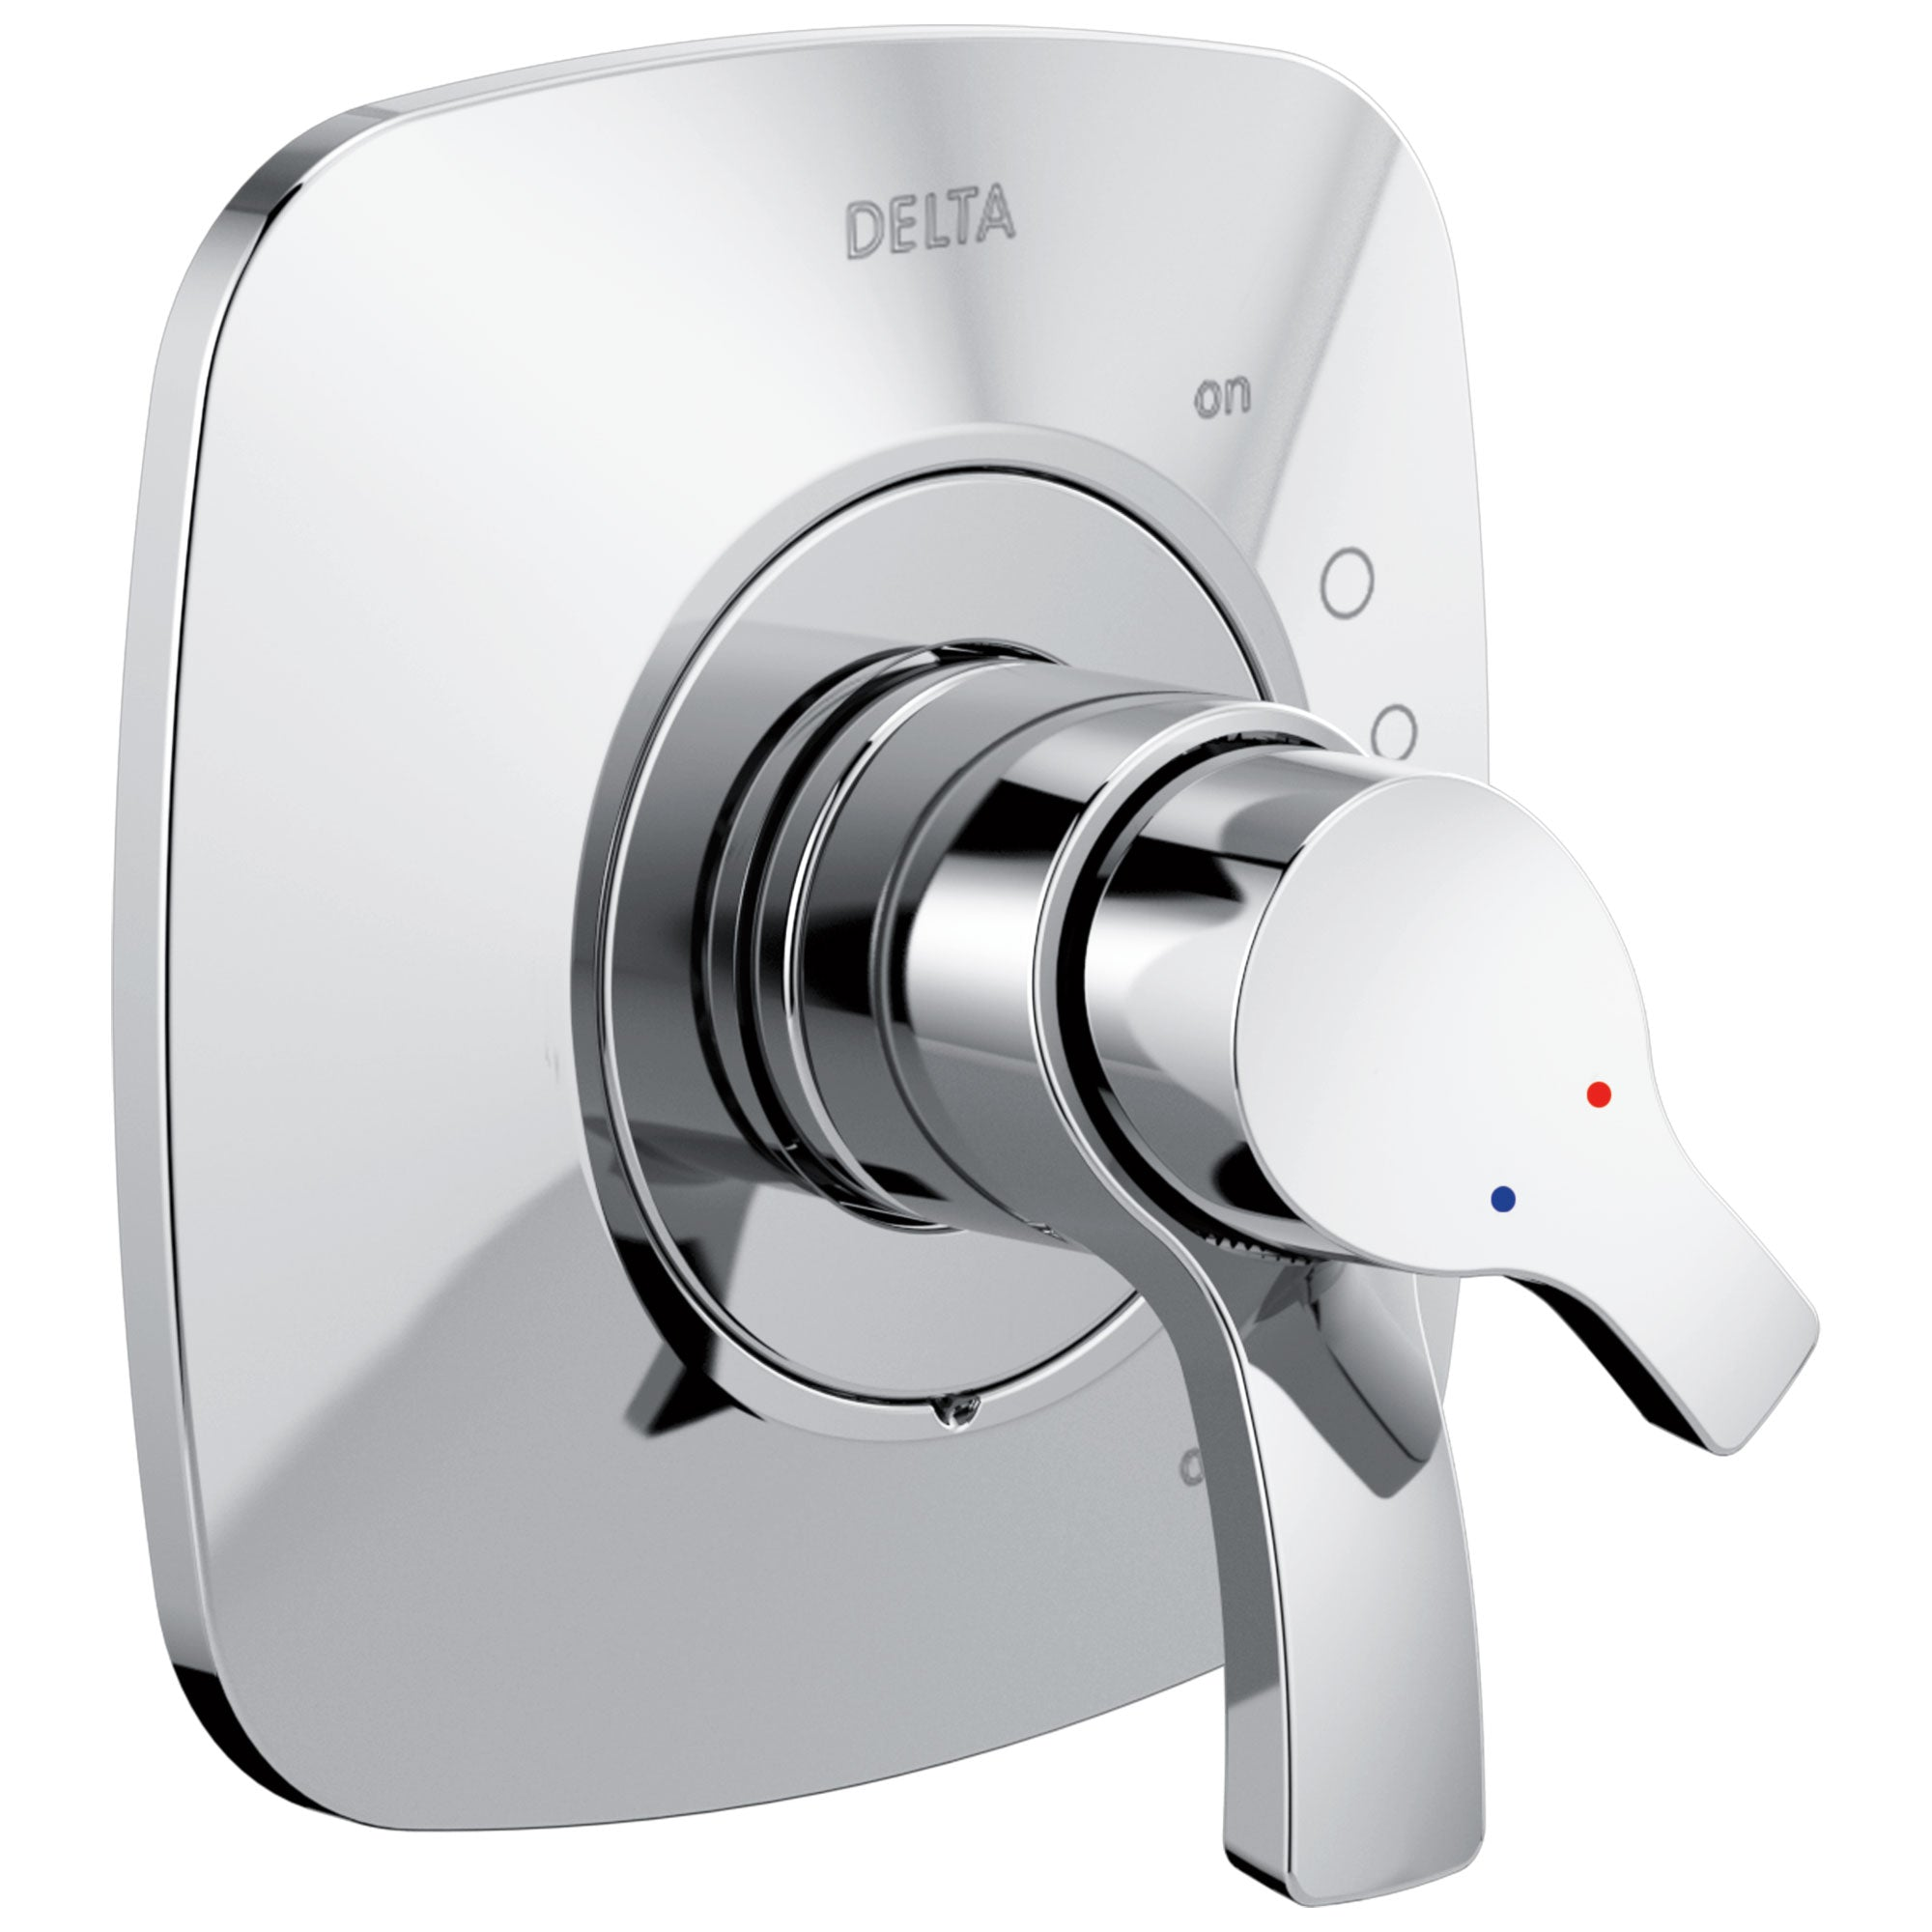 Delta Tesla Collection Chrome Monitor 17 Dual Temperature and Water Pressure Shower Faucet Control Handle Includes Trim Kit and Valve with Stops D1983V